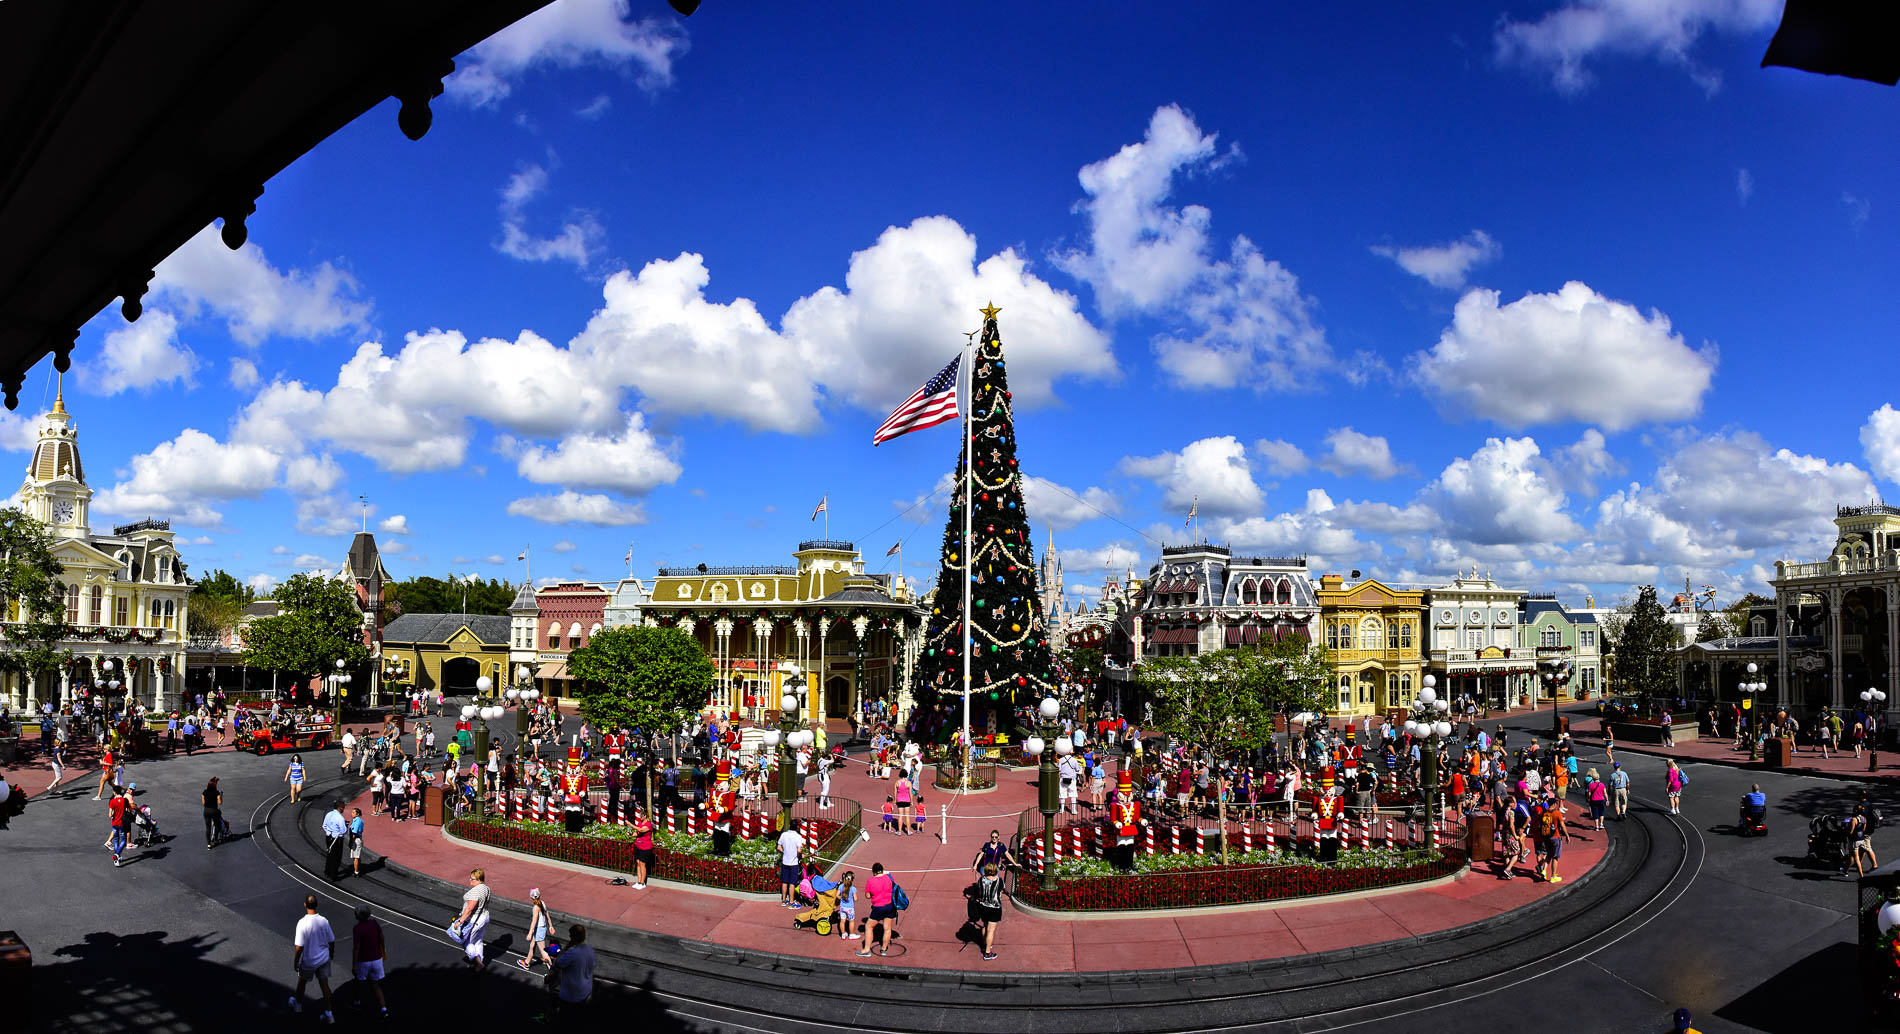 christmas at the magic kingdom shows up right after halloween in a big way with the decorations around the square on main street photo by donald fink - When Does Disneyworld Decorate For Christmas